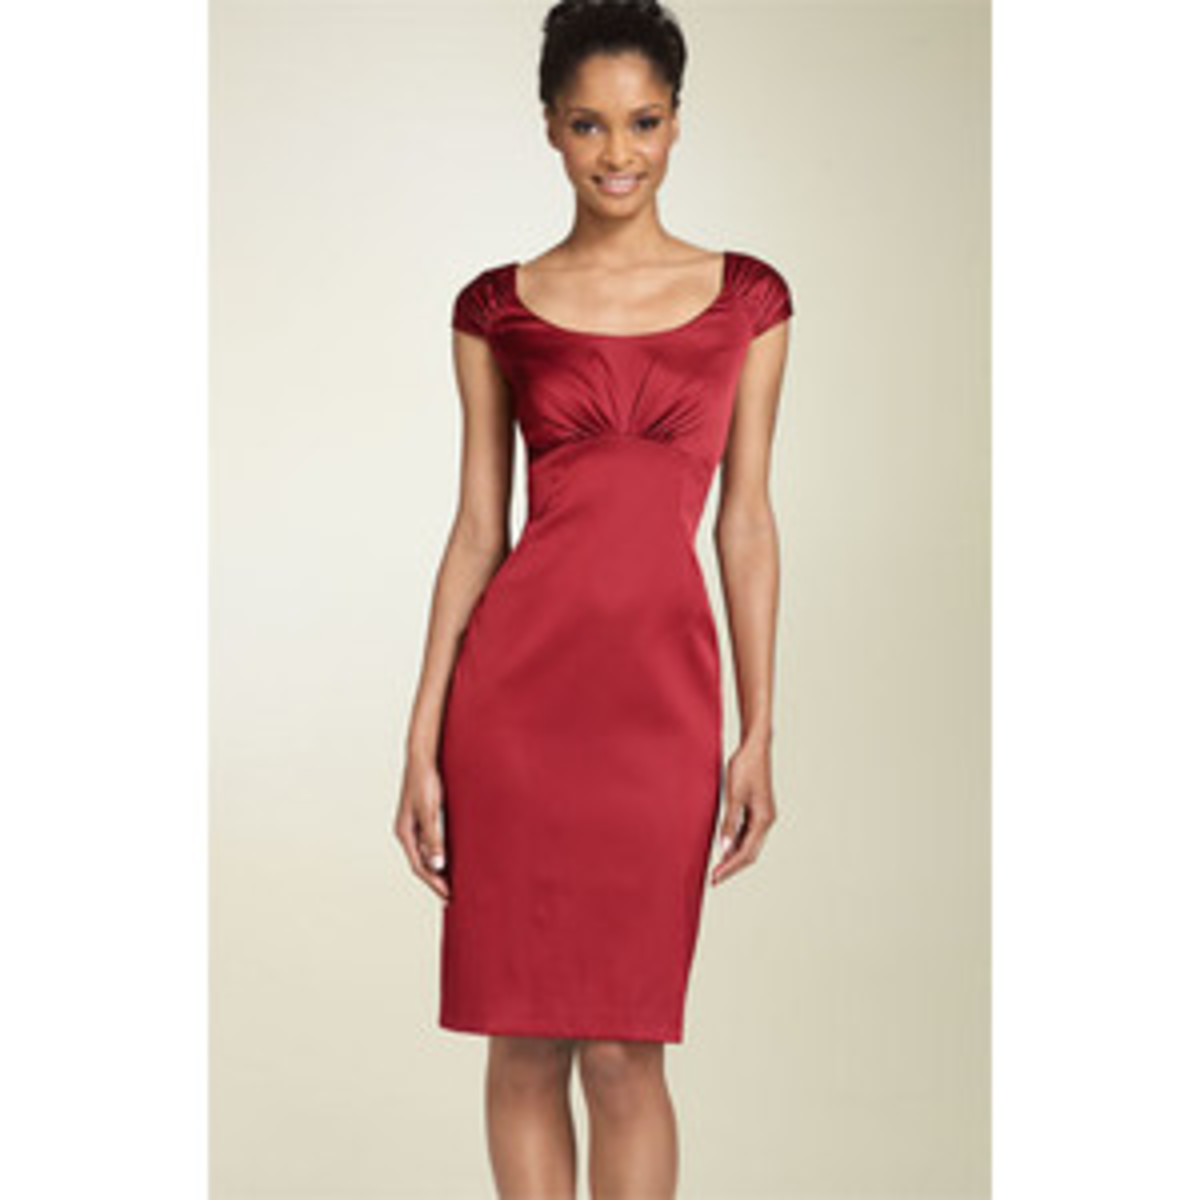 This sheath is good for hourglass figures, but a pear would also look great in this because of the beautiful roching across the bust.